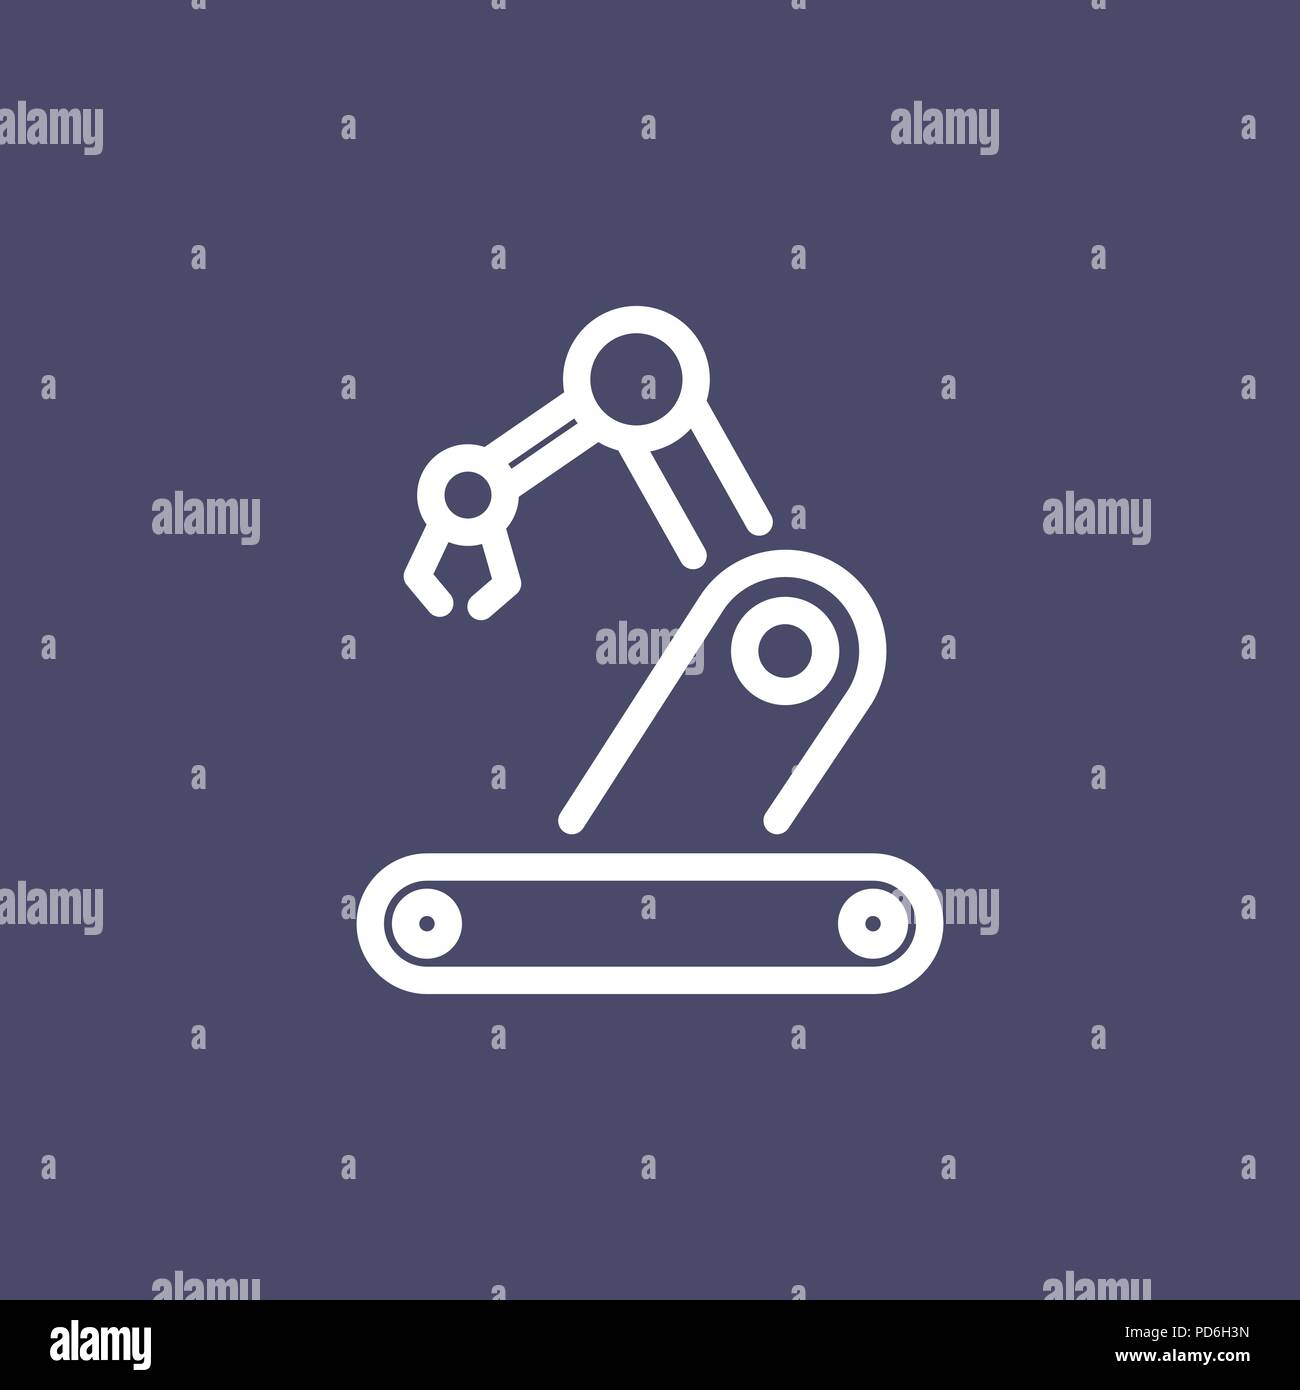 Robotics Icon Simple Flat Style Outline Illustration Stock Vector